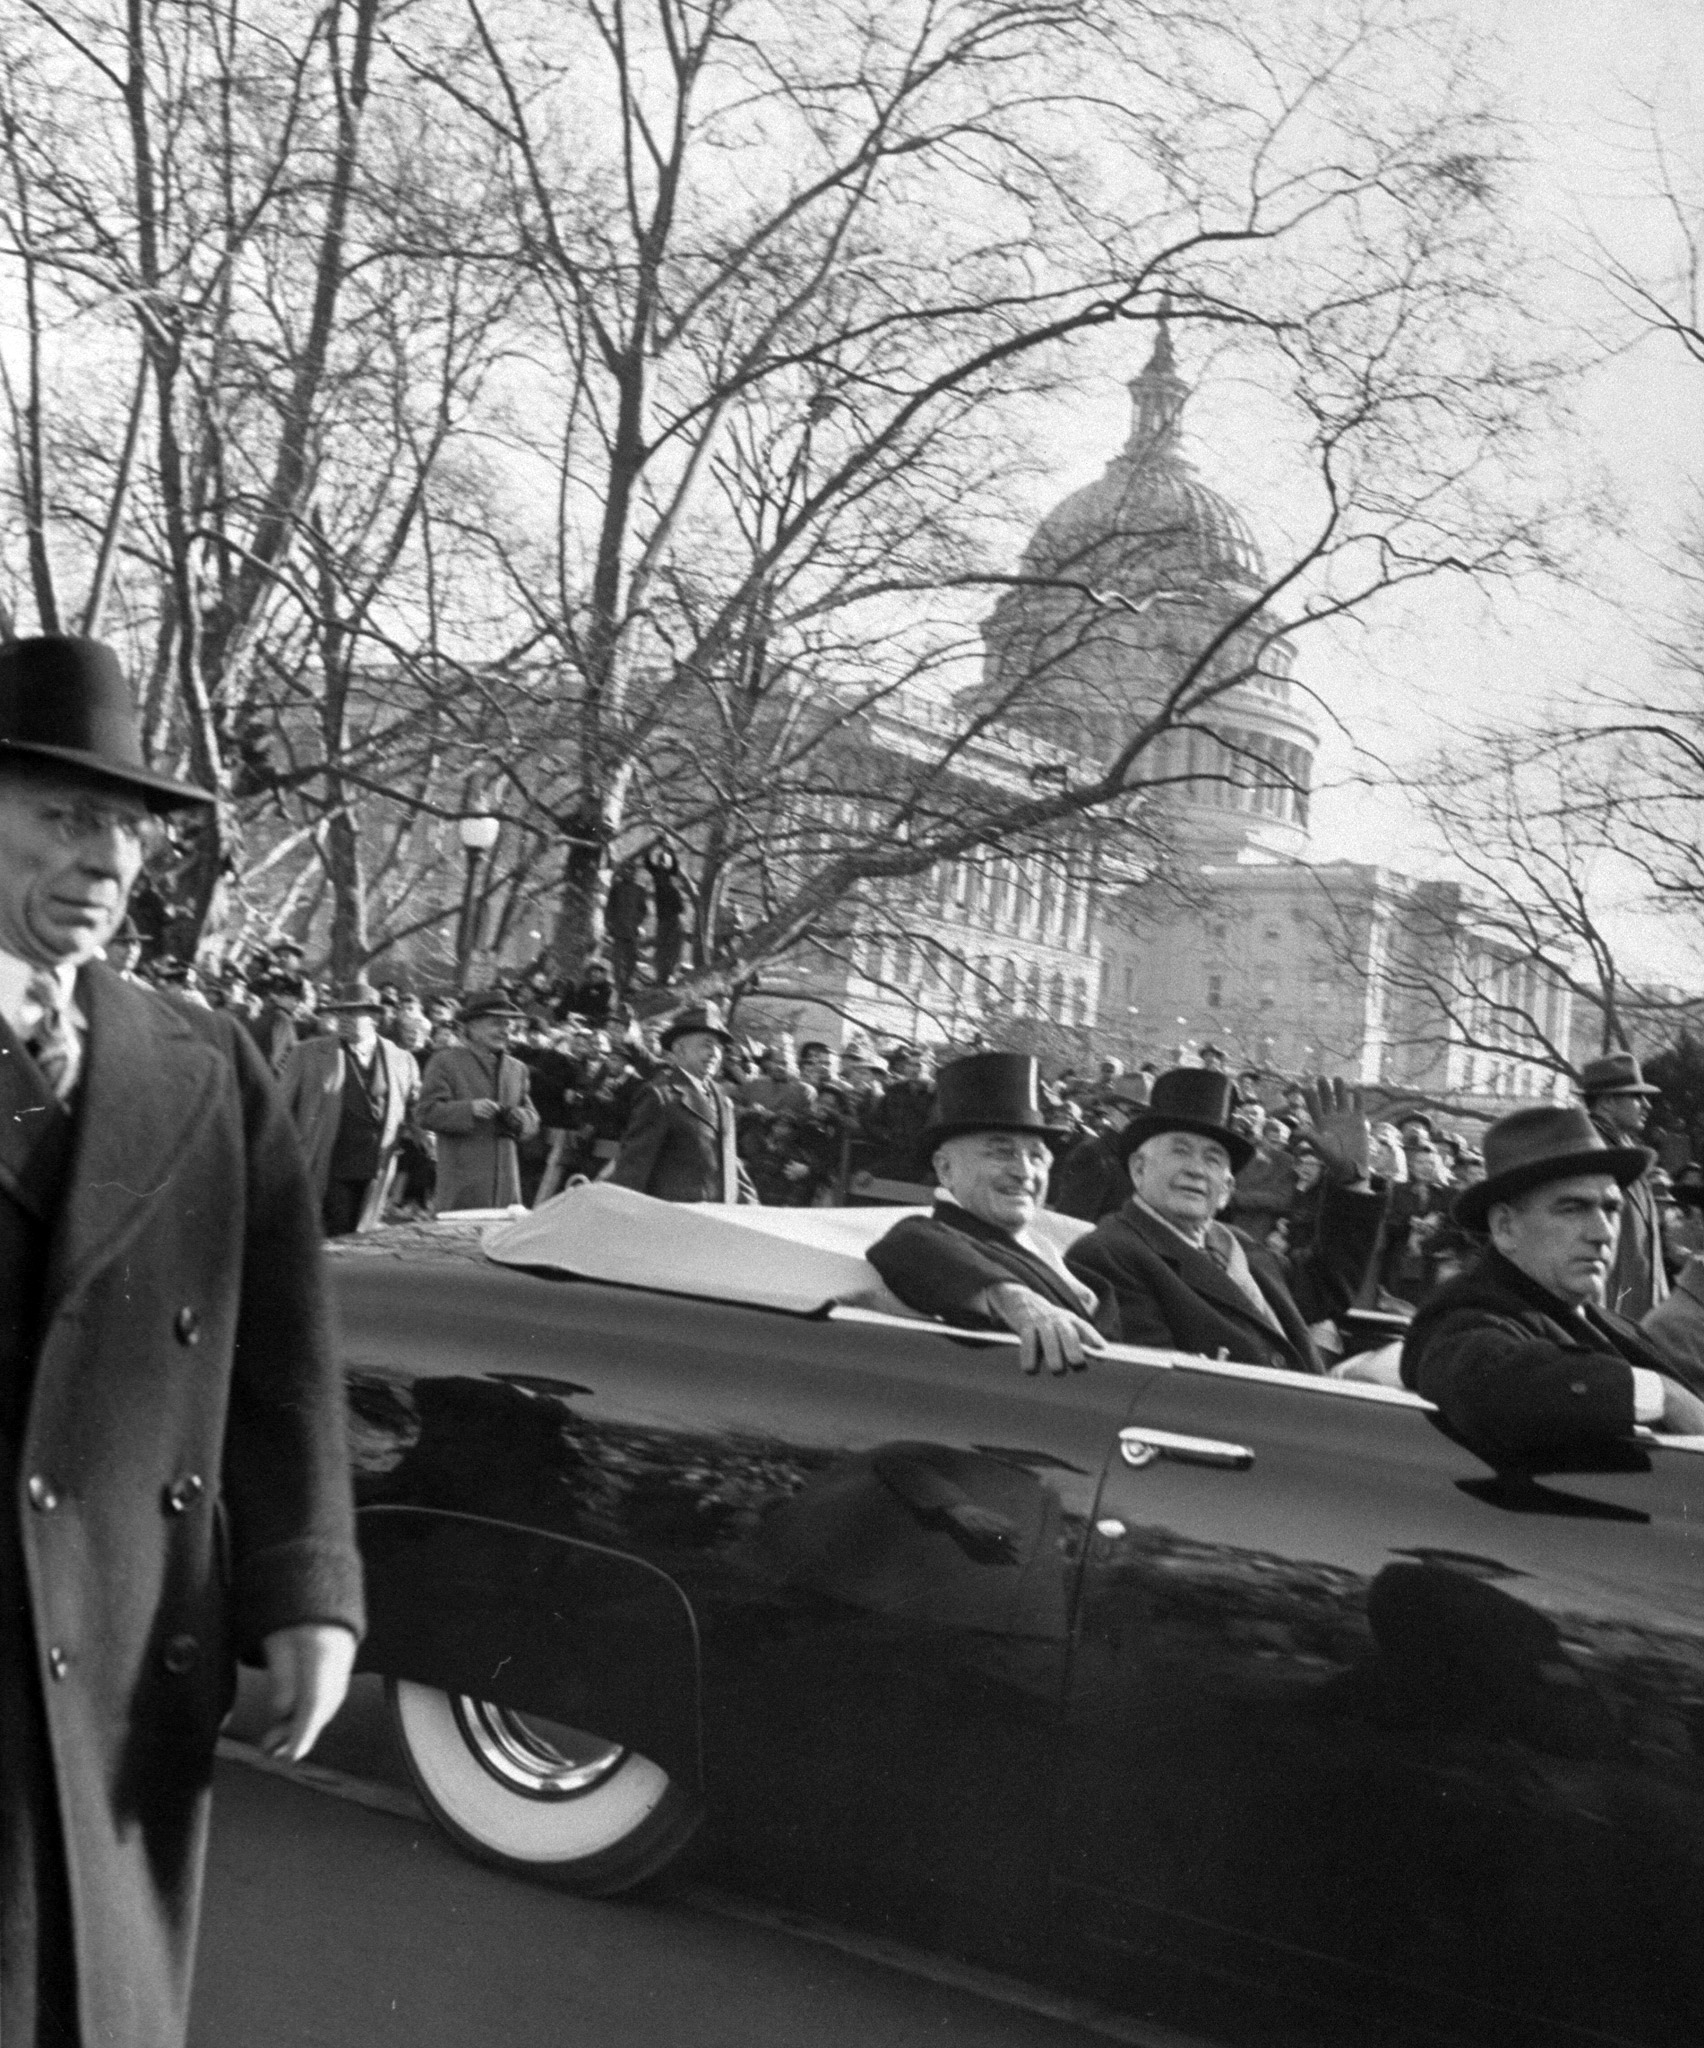 Harry S. Truman riding with Vice President Alben Barkley during the Presidential Inauguration parade, 1949.